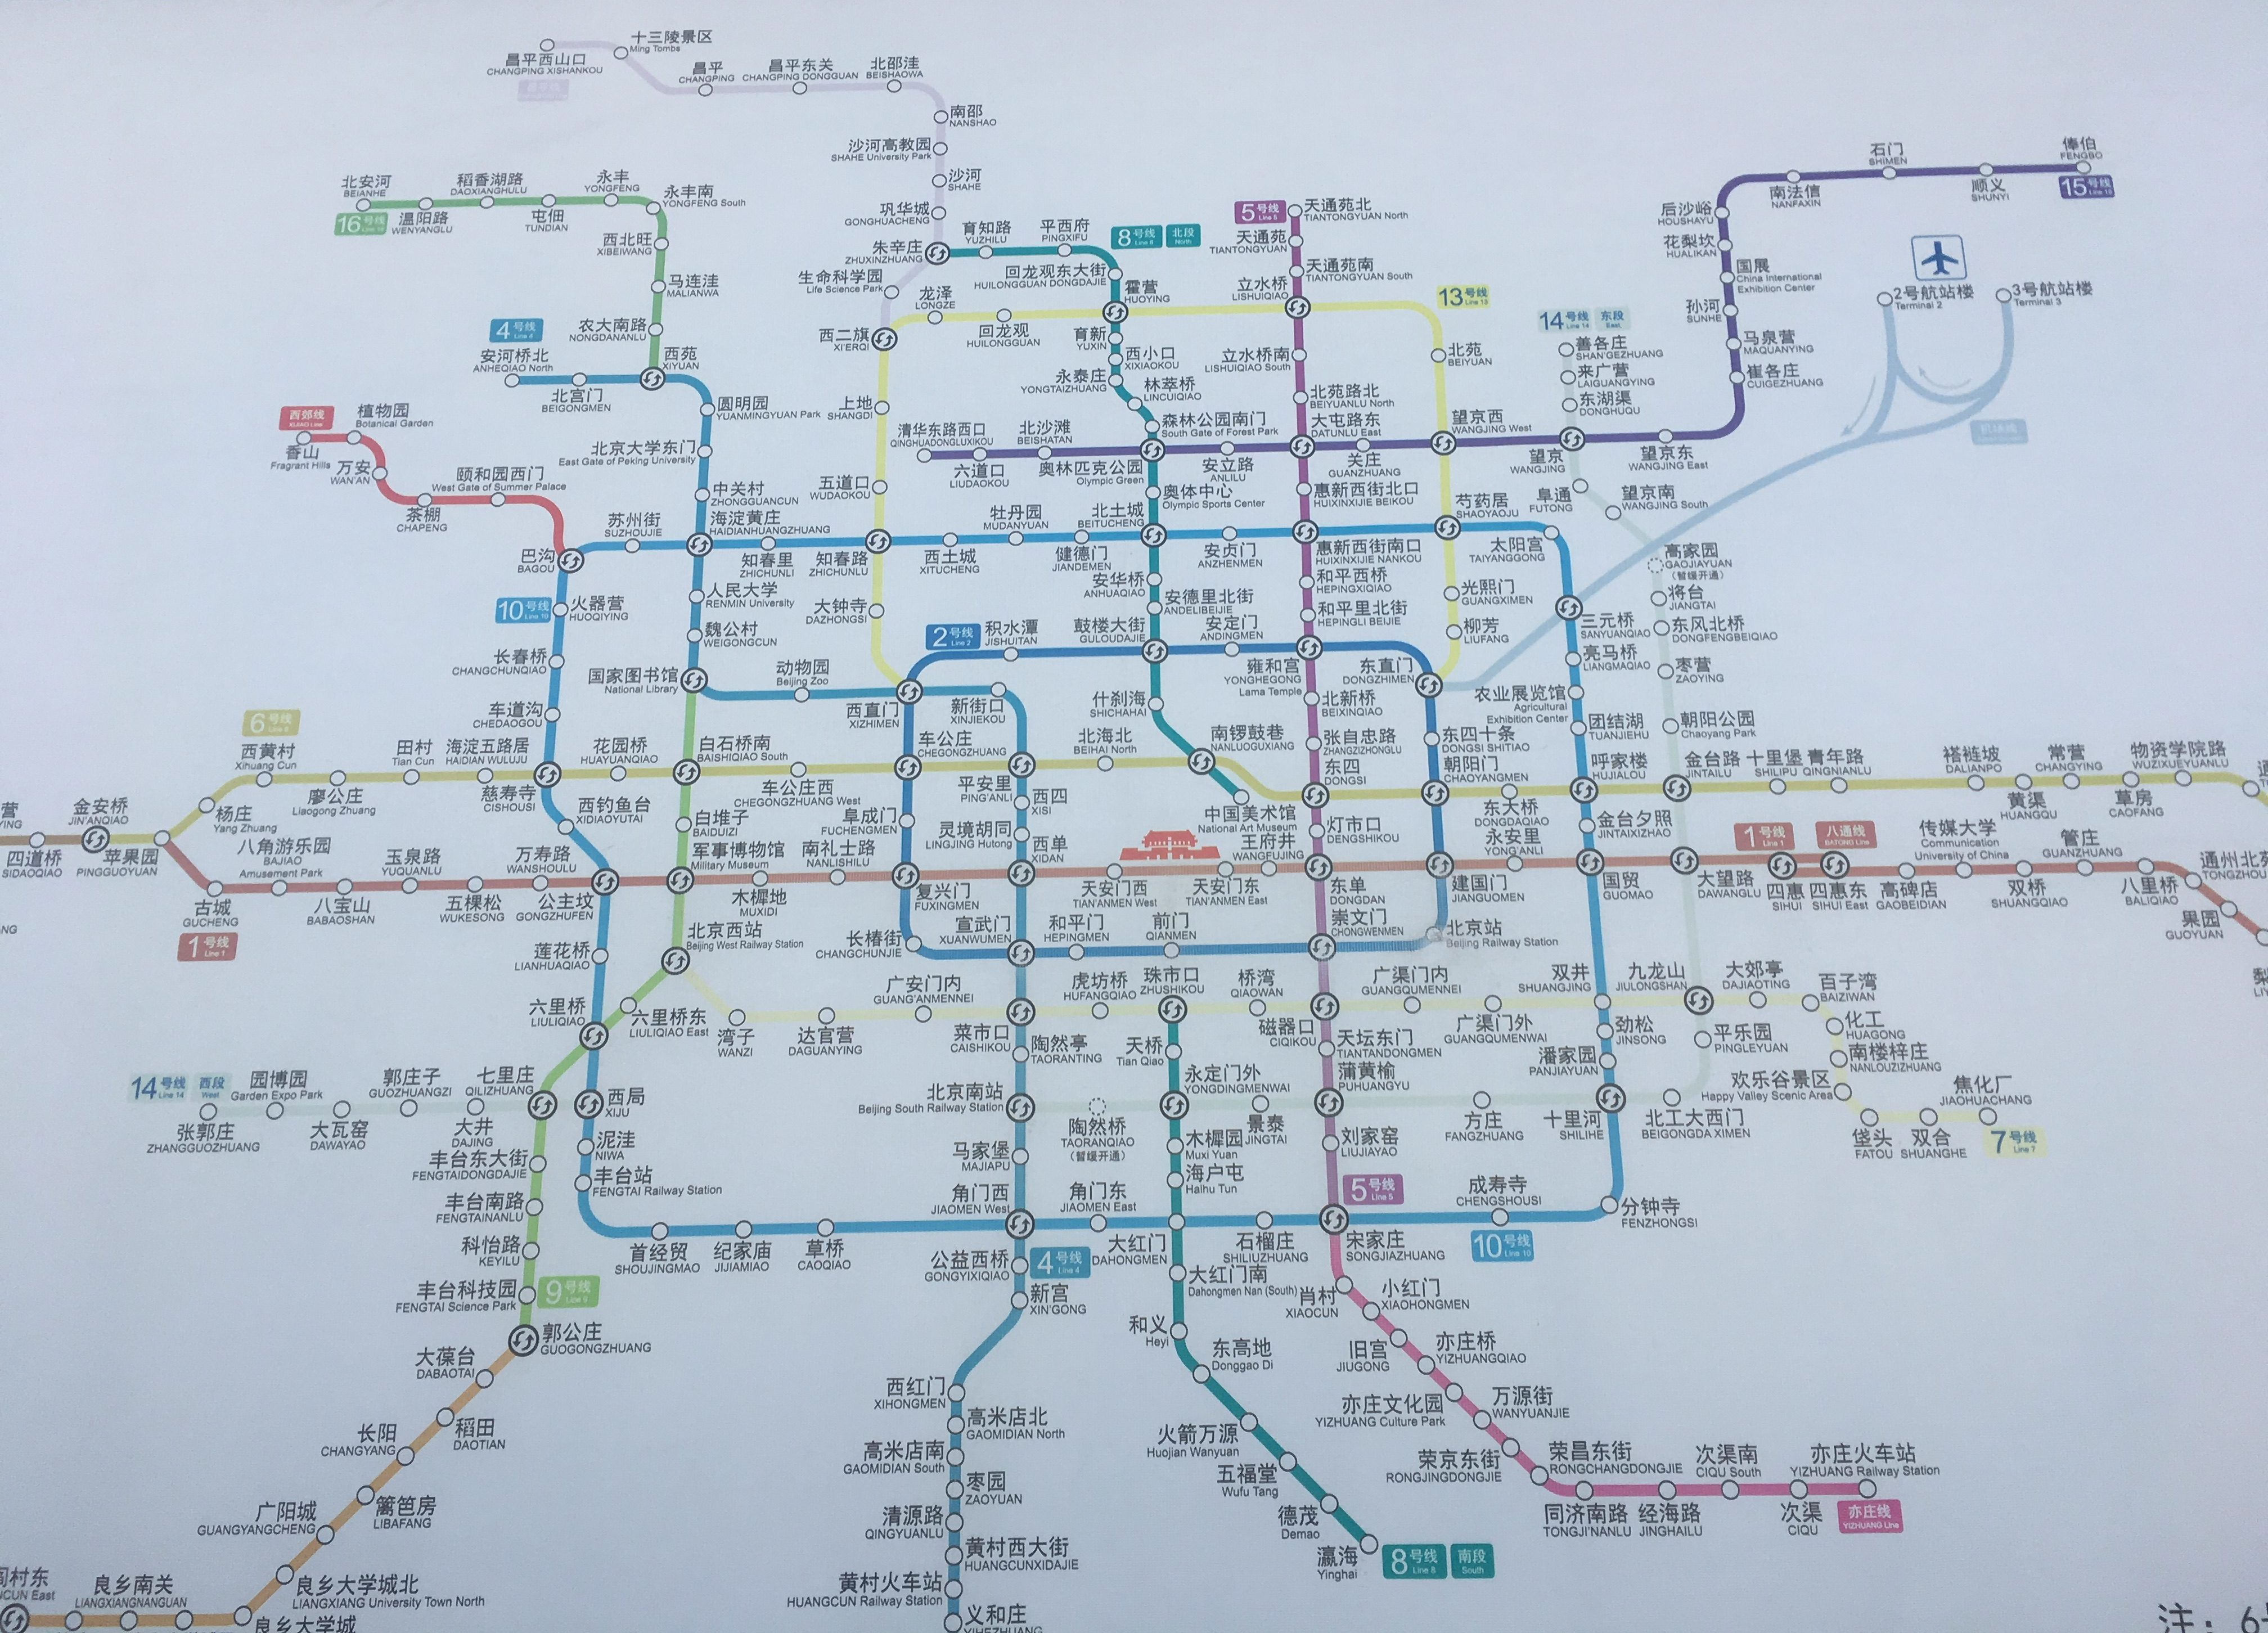 There you go, Beijing subway. Easy.